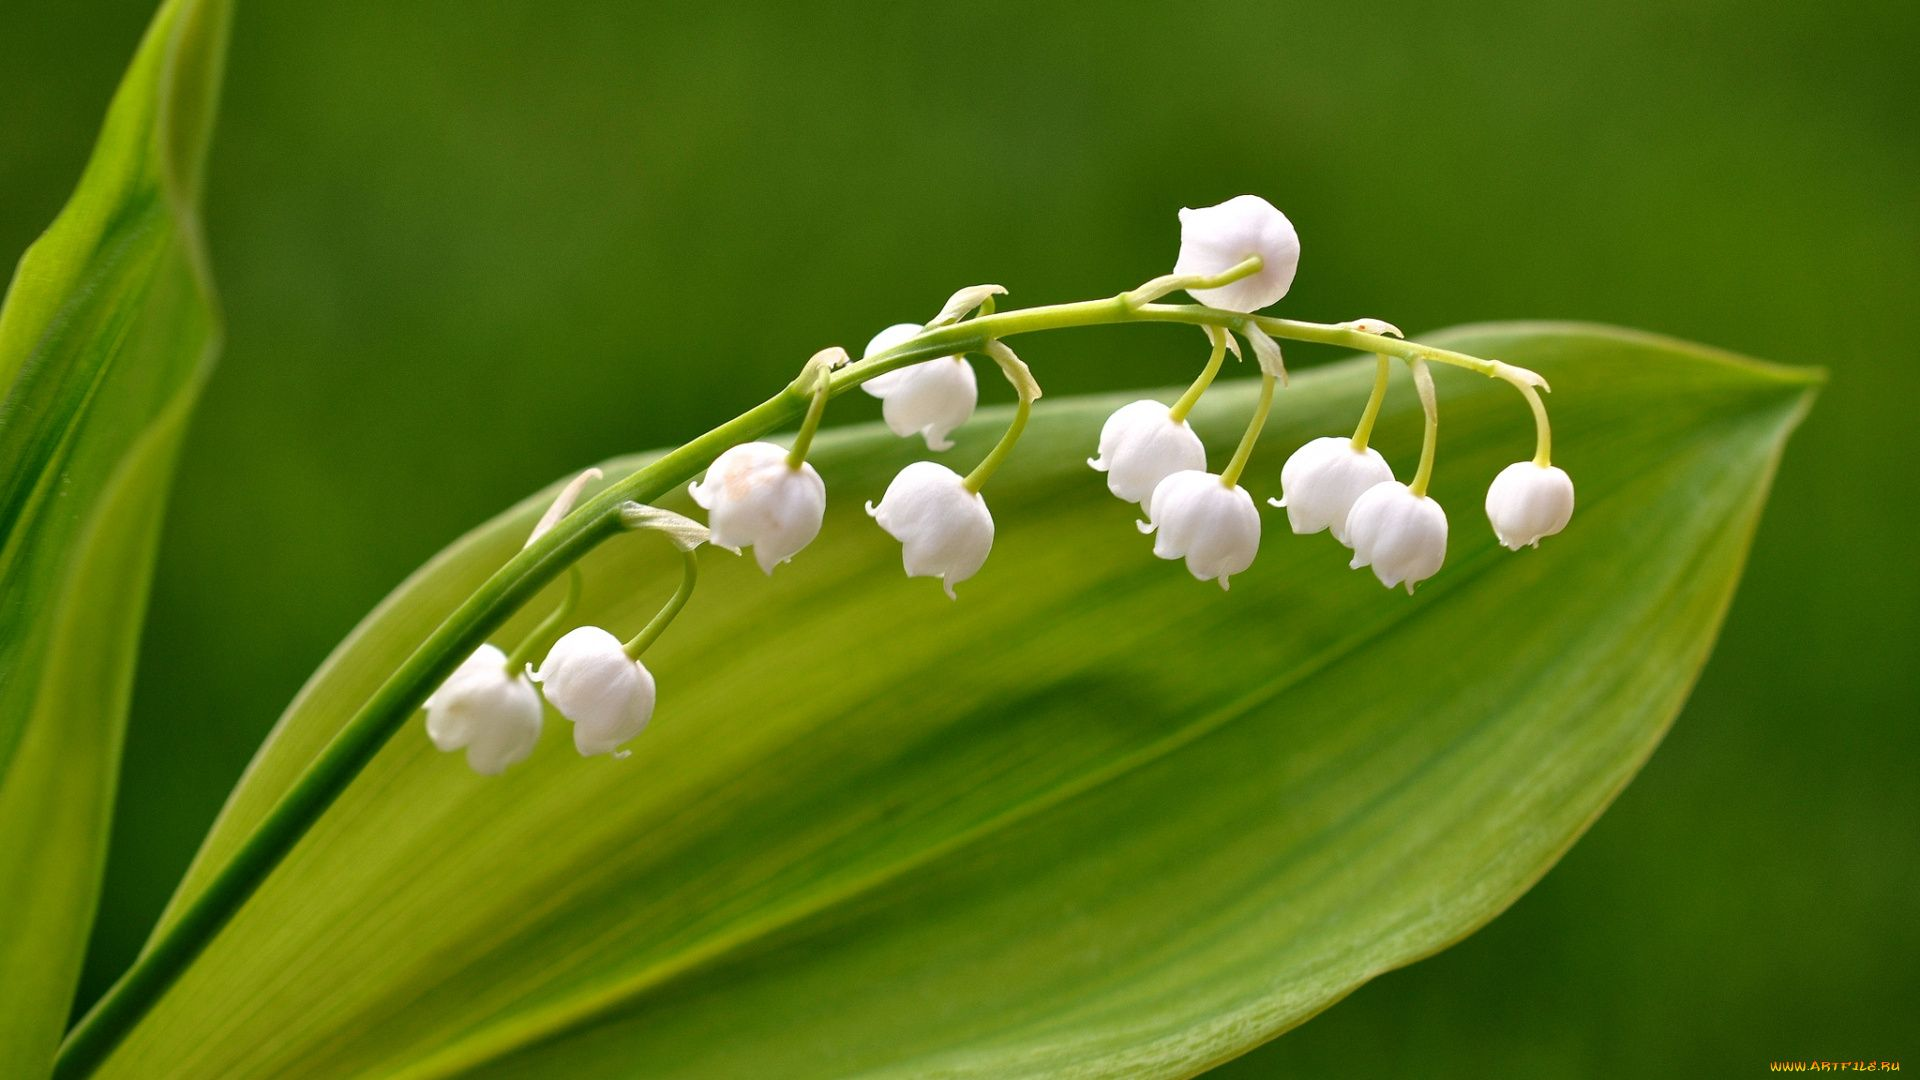 Lily Of The Valley download wallpaper image